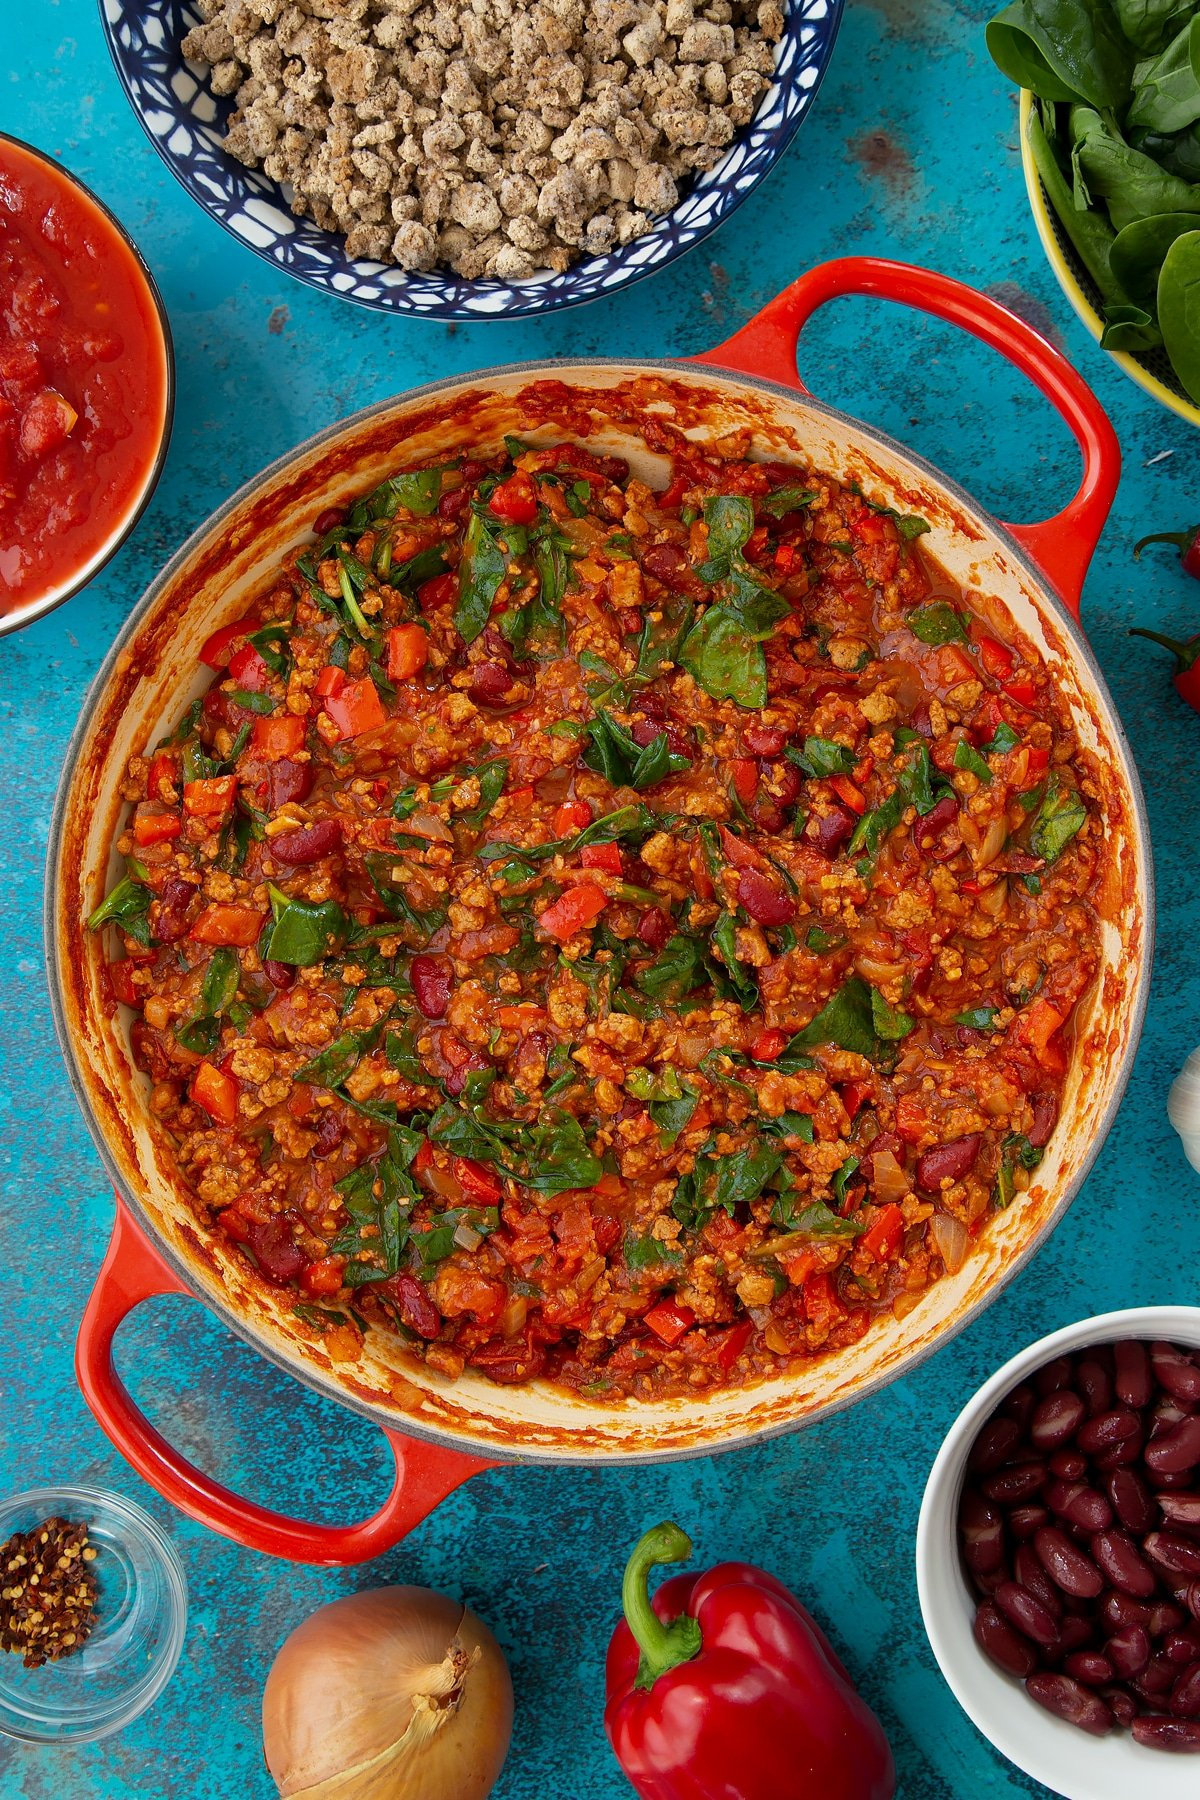 Vegetarian chilli in a pan, freshly cooked. Ingredients to make vegetarian mince chilli surround the pan.